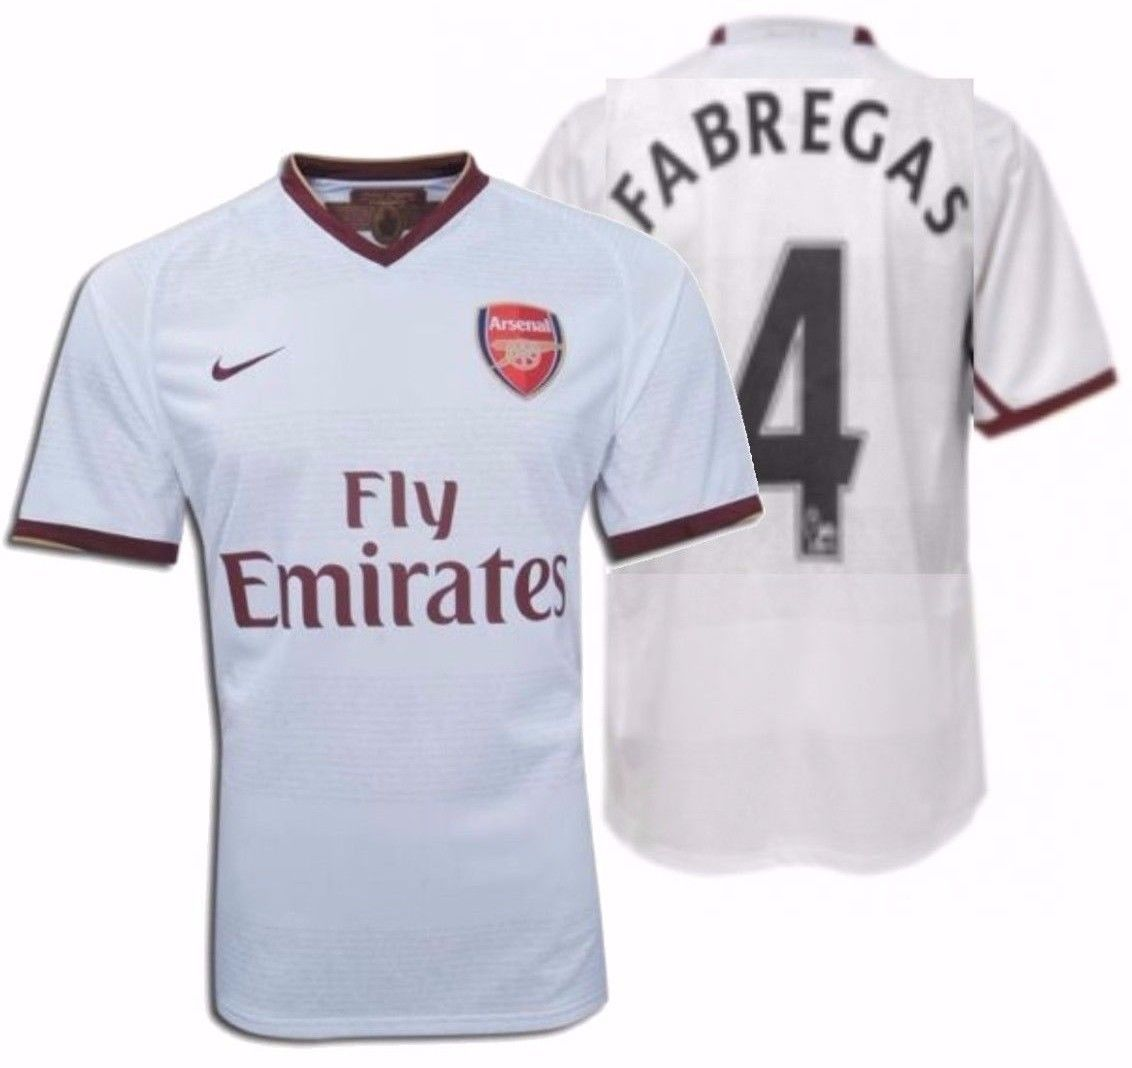 30b65ad7e Nike Cesc Fabregas Arsenal Away Jersey and 50 similar items. S l1600